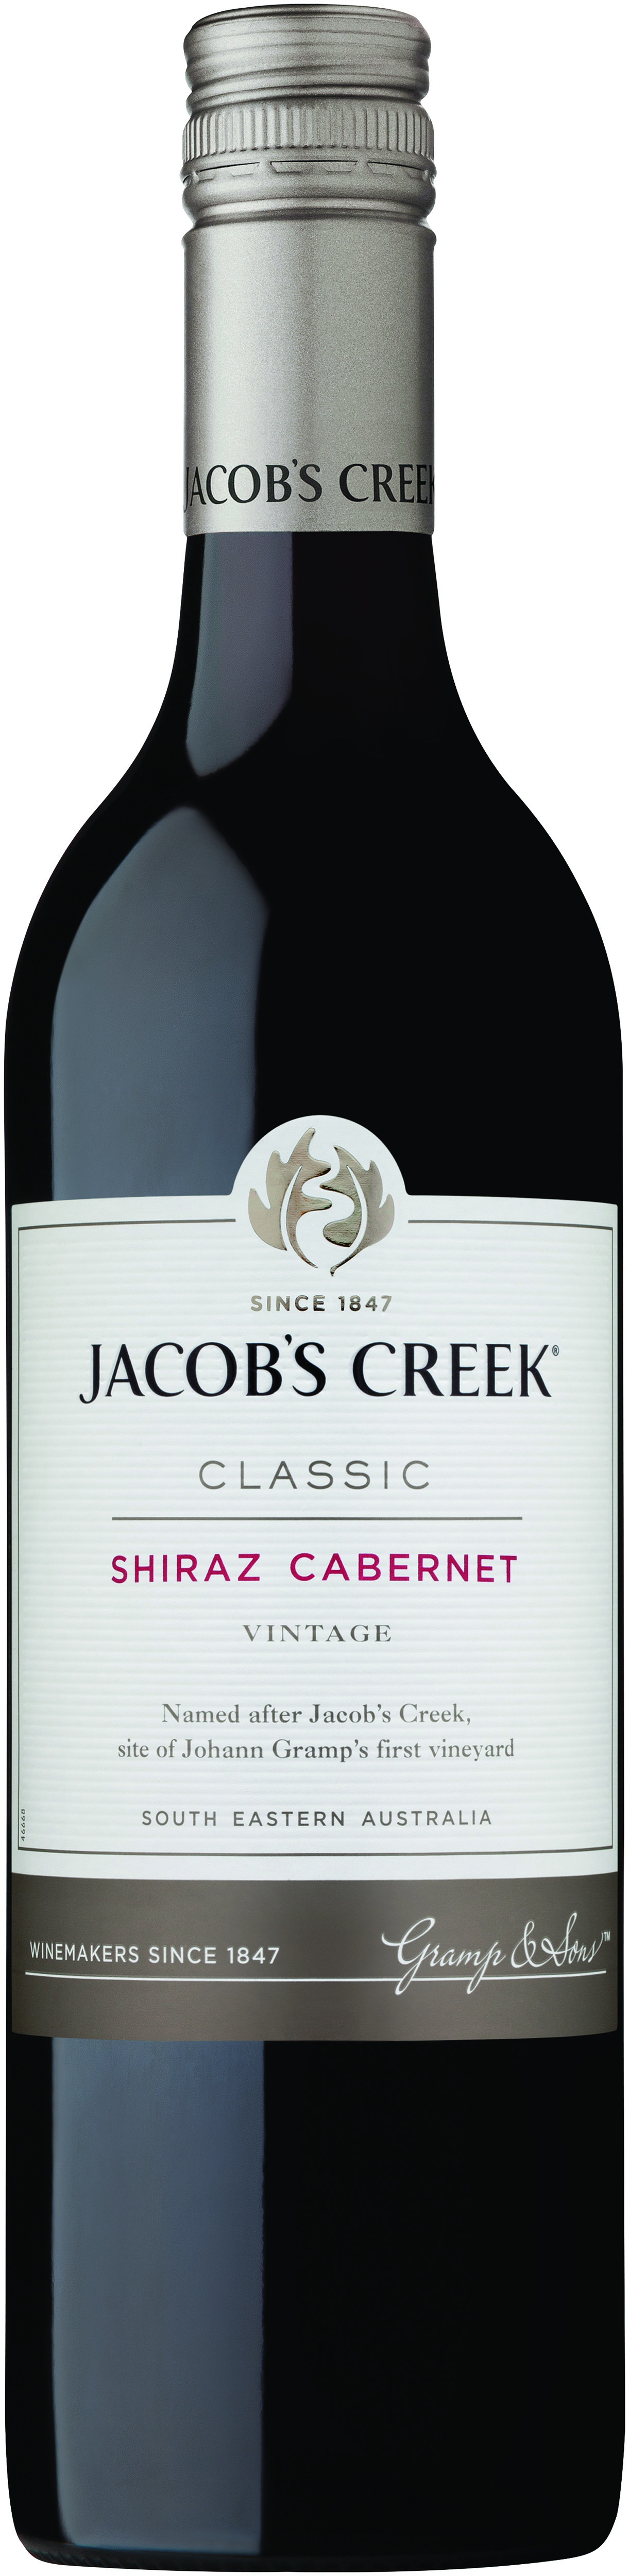 JACOB'S CREEK, the World's Most Awarded Winery 2014*, has launched its new global 'Made By' brand campaign, which celebrates the people, places and passions that go into crafting every bottle of Jacob's Creek wine.